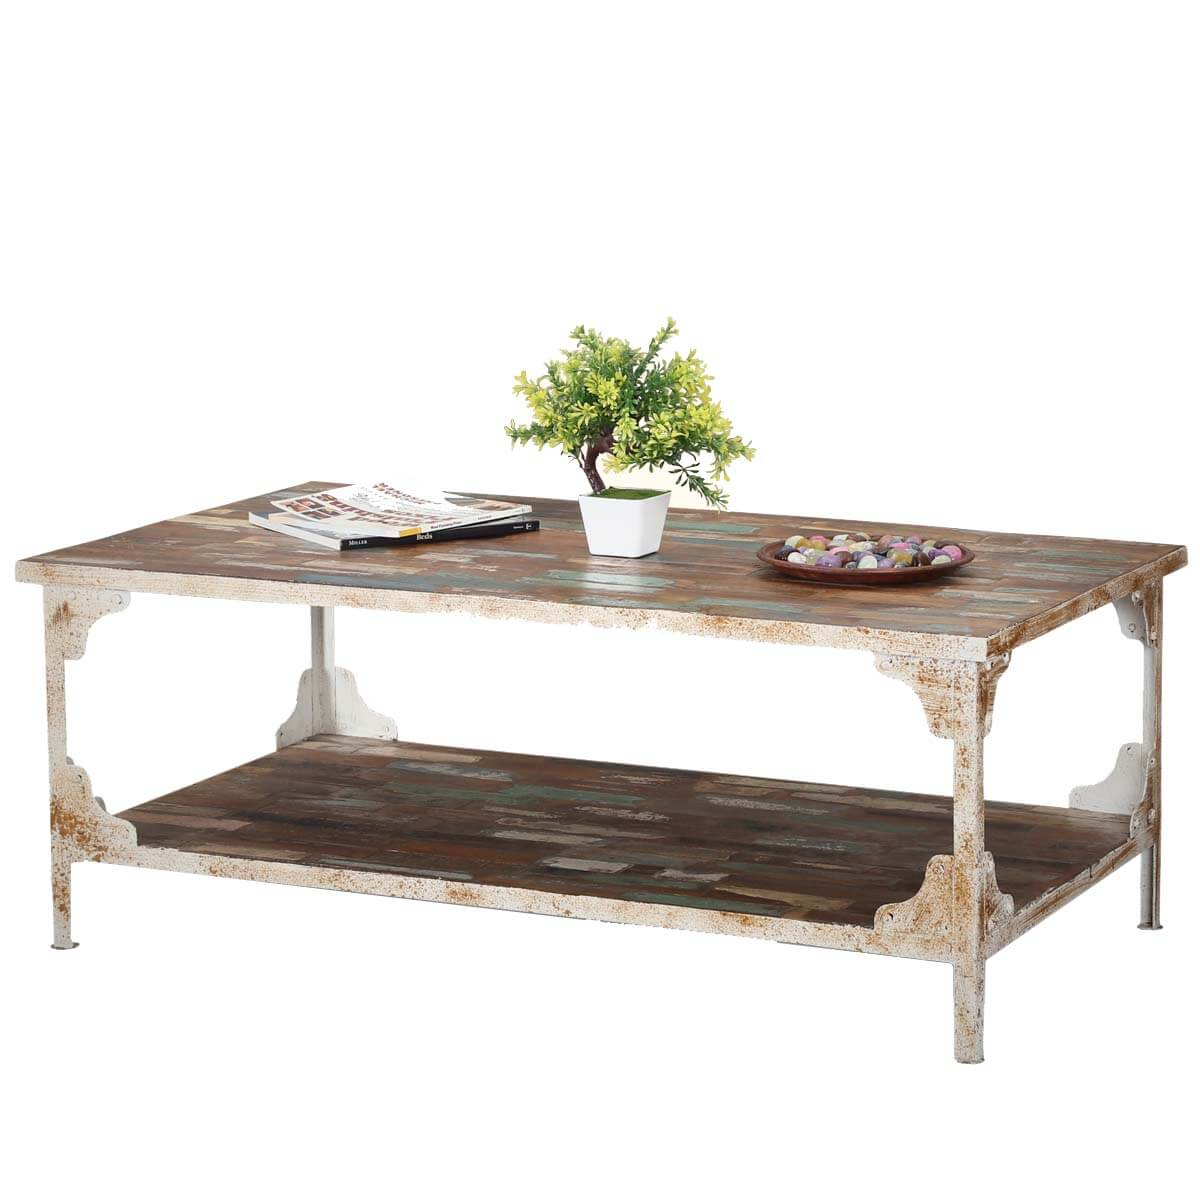 Strange Industrial Reclaimed Wood Iron 2 Tier Coffee Table Ocoug Best Dining Table And Chair Ideas Images Ocougorg